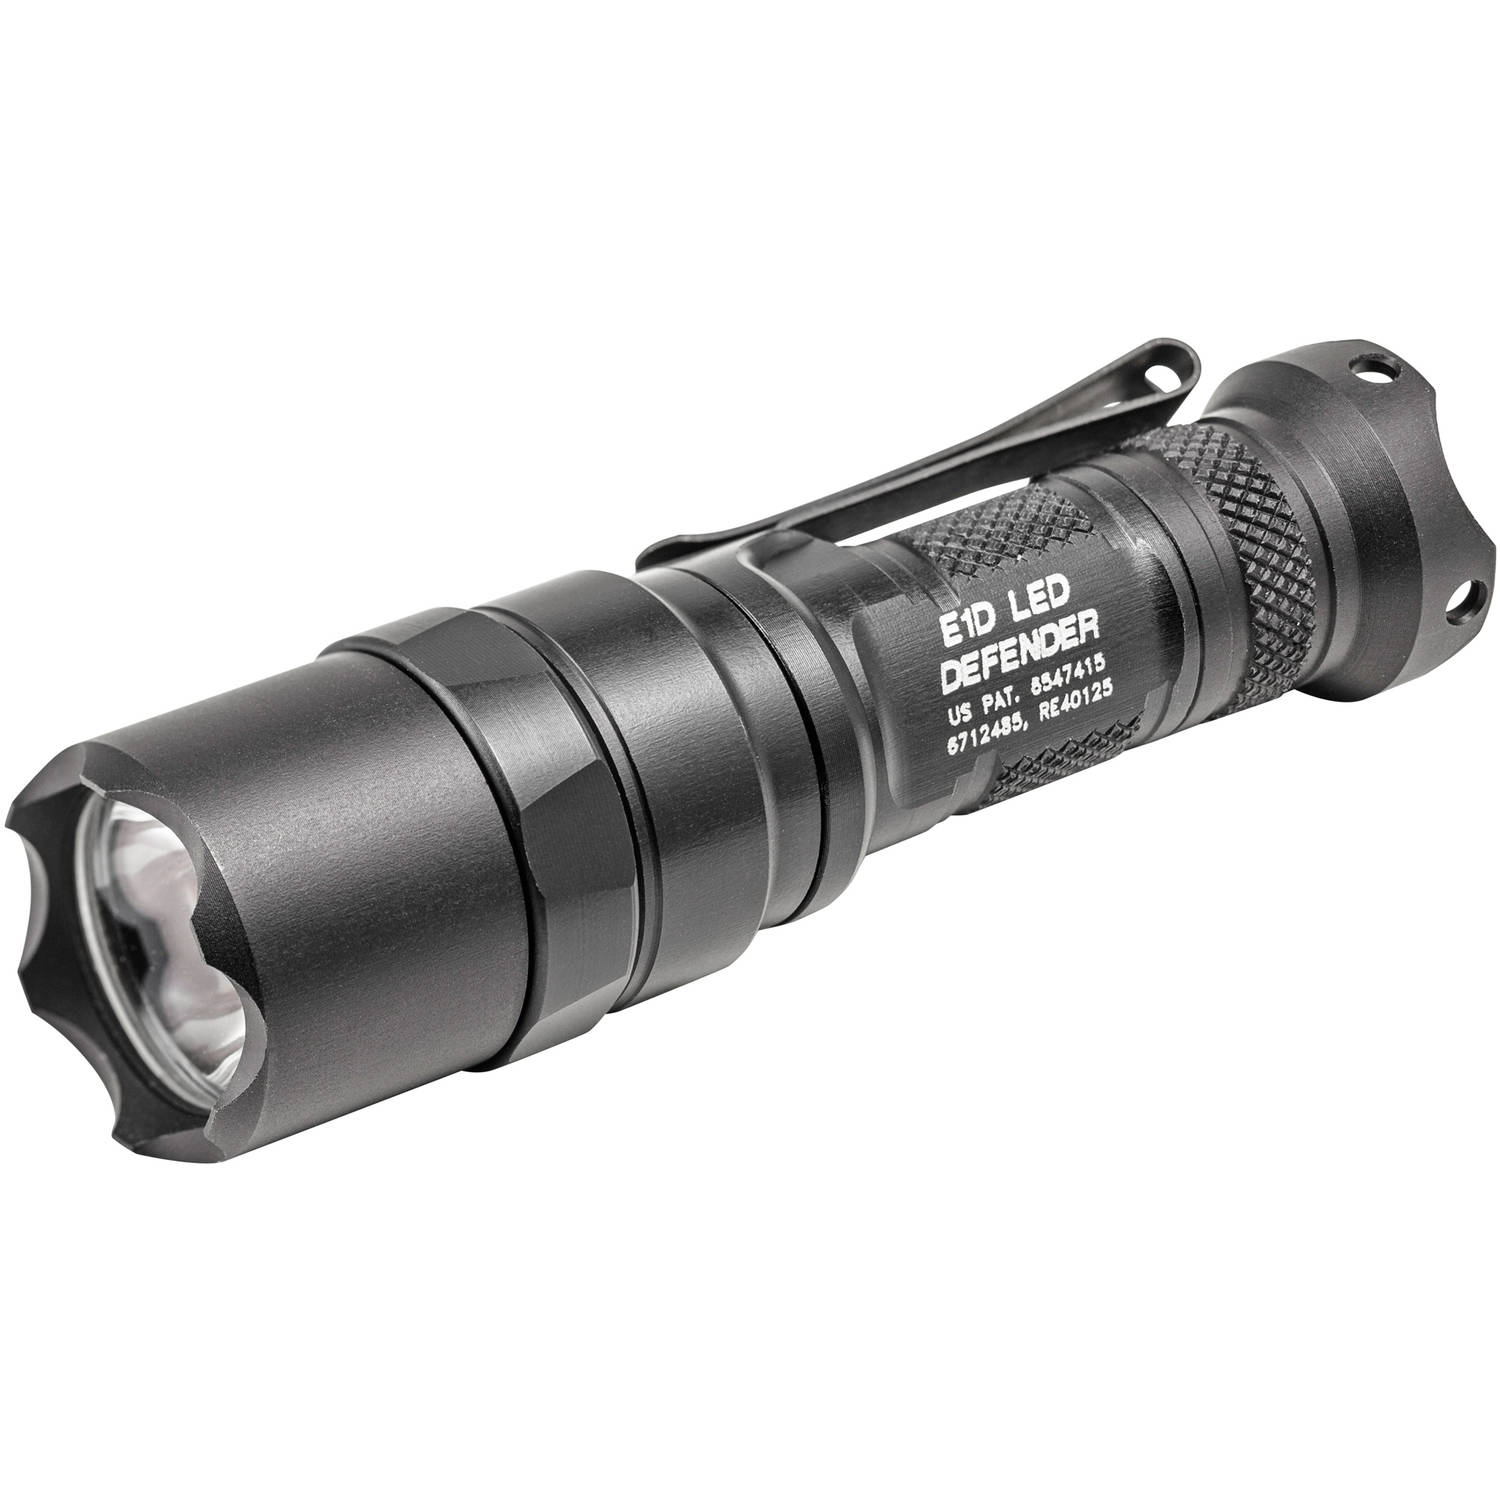 Surefire E1D LED Defender Flashlight, Dual-Output LED, 300 5 Lumens, Constant-On Click-Type Tailcap Switch, Black by Surefire